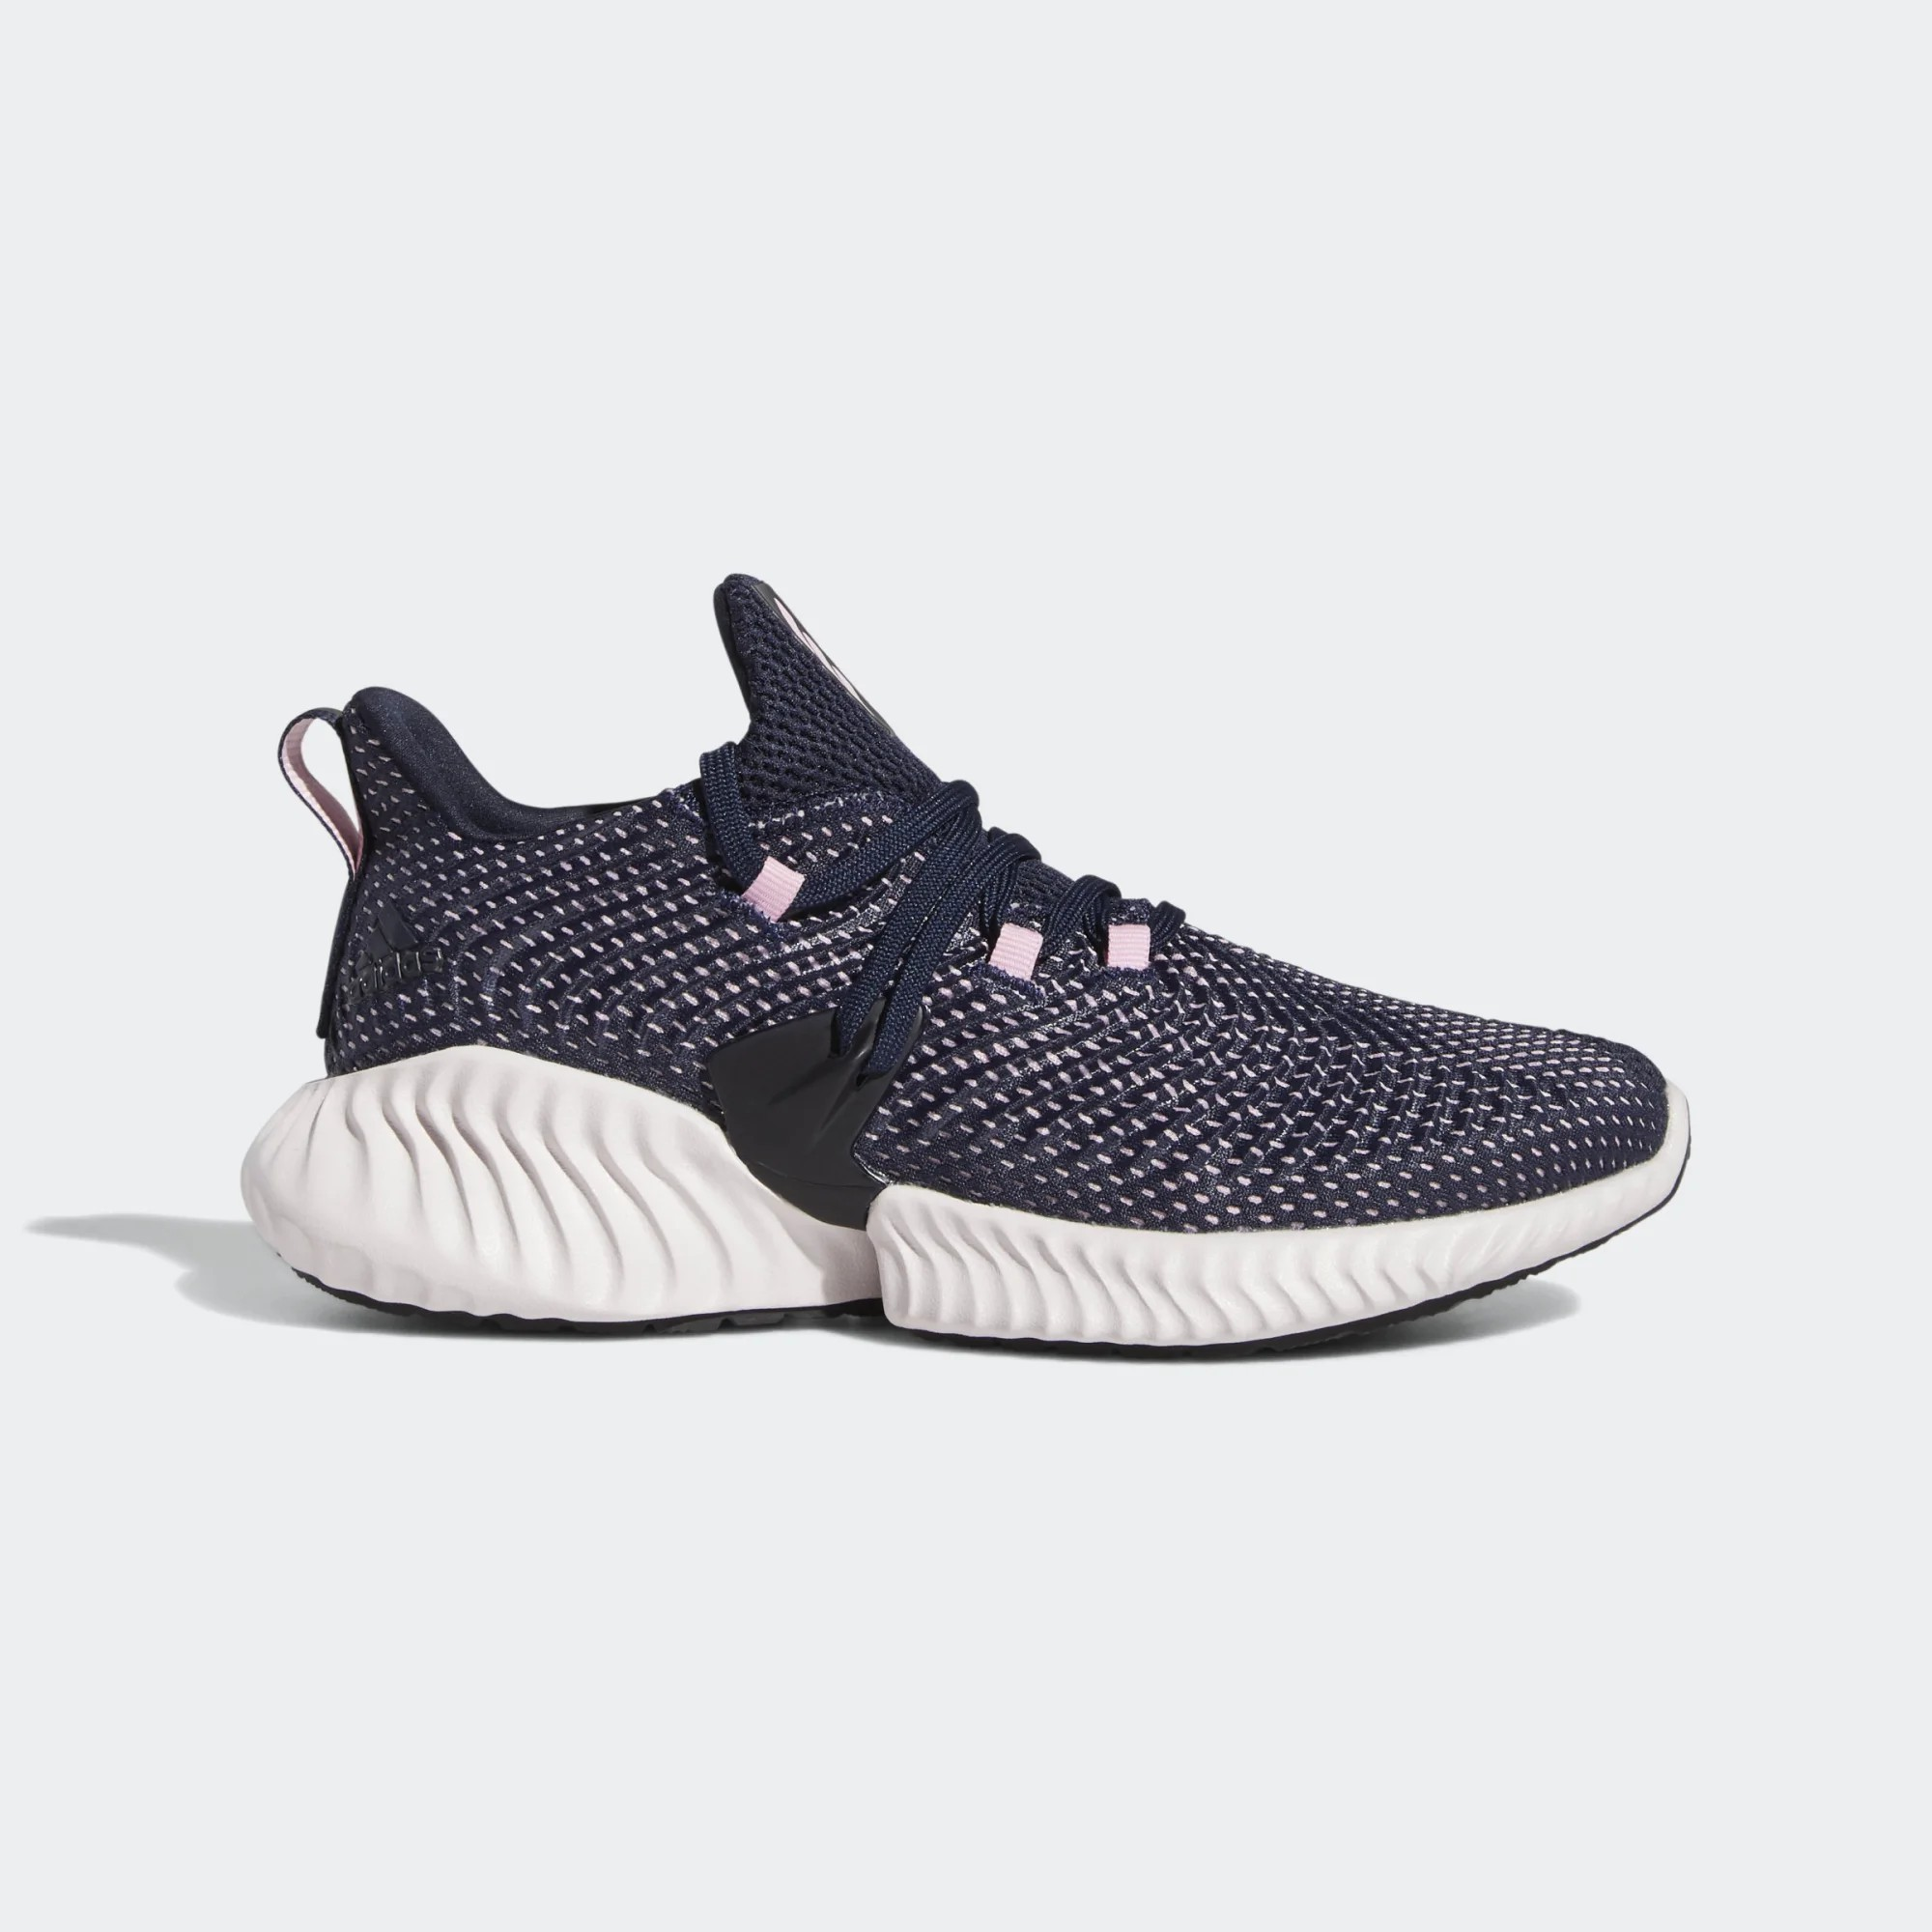 adidas AlphaBounce Instinct Women's Running Shoes Navy D97319